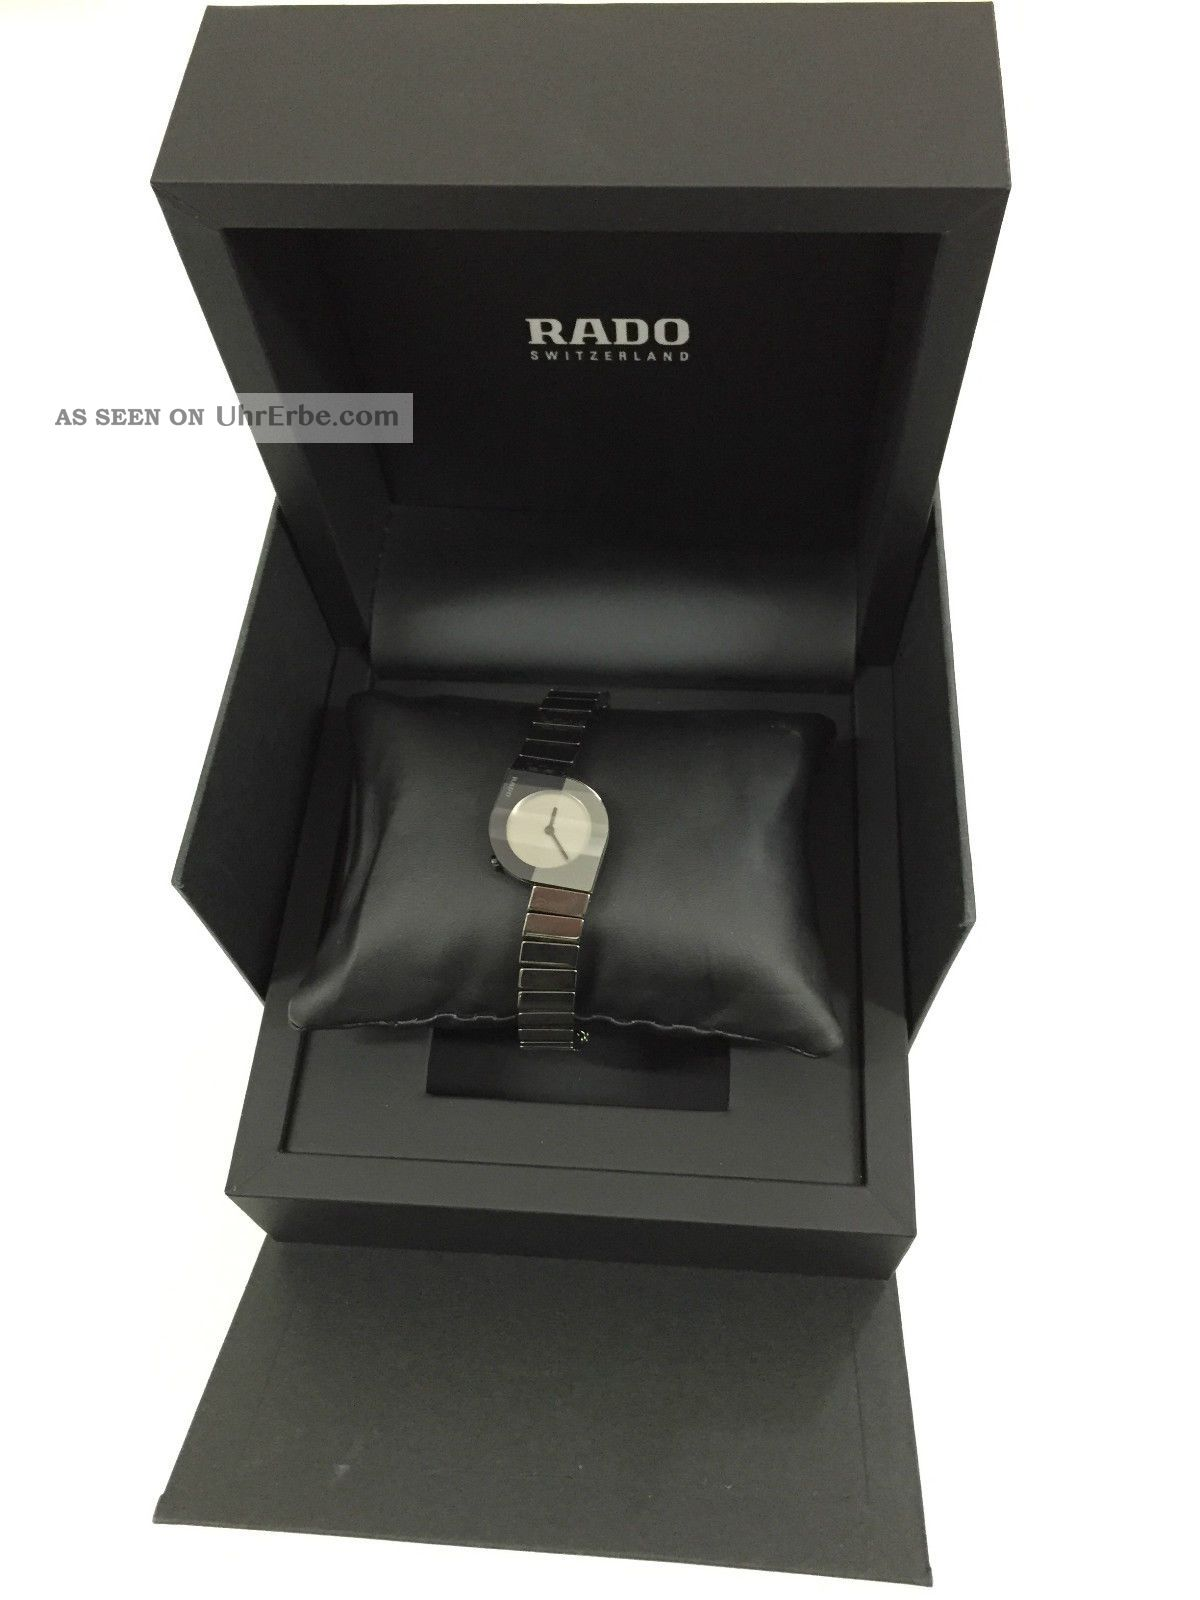 Rado Damenuhr Cerix High Tech Ceramics Armbanduhren Bild